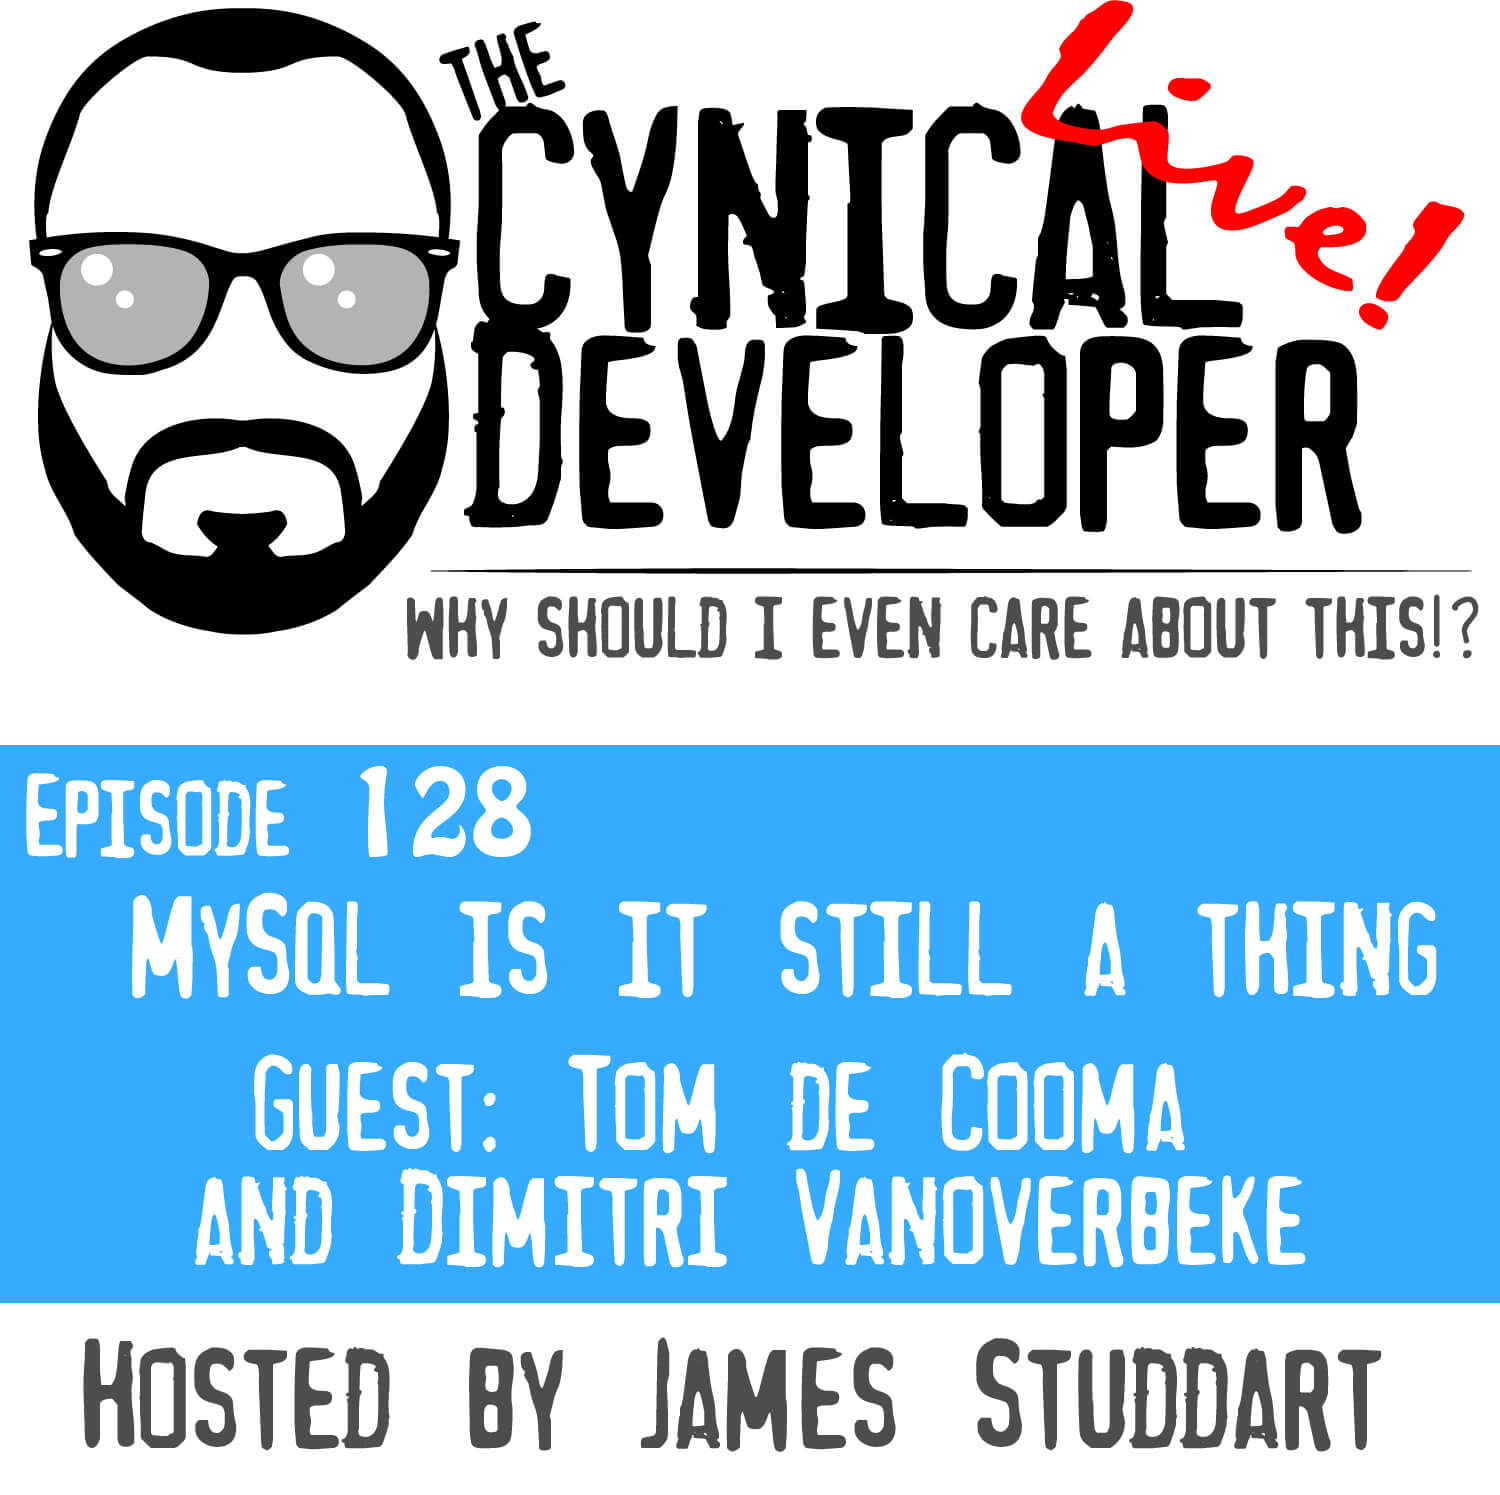 Episode 128 - Is MySQL still a thing? - Percona Live Europe 2019